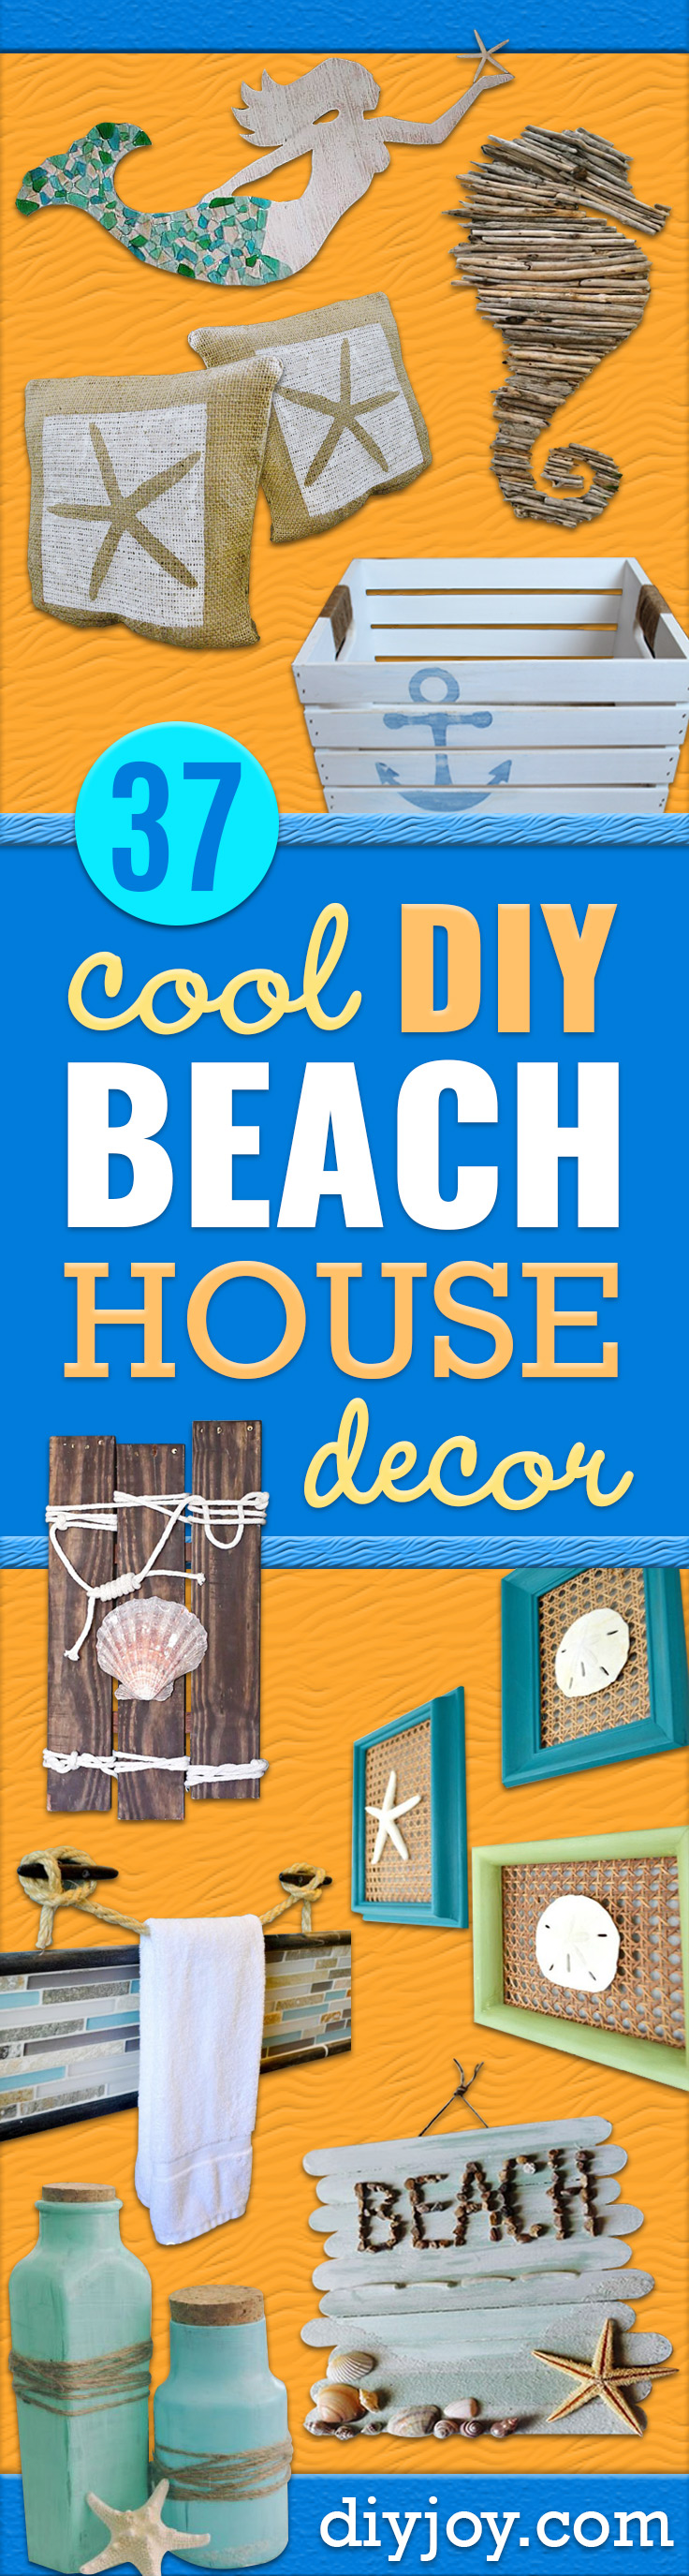 37 best diy beach house decor ideas diy beach house decor cool diy decor ideas while on a budget cool ideas solutioingenieria Images